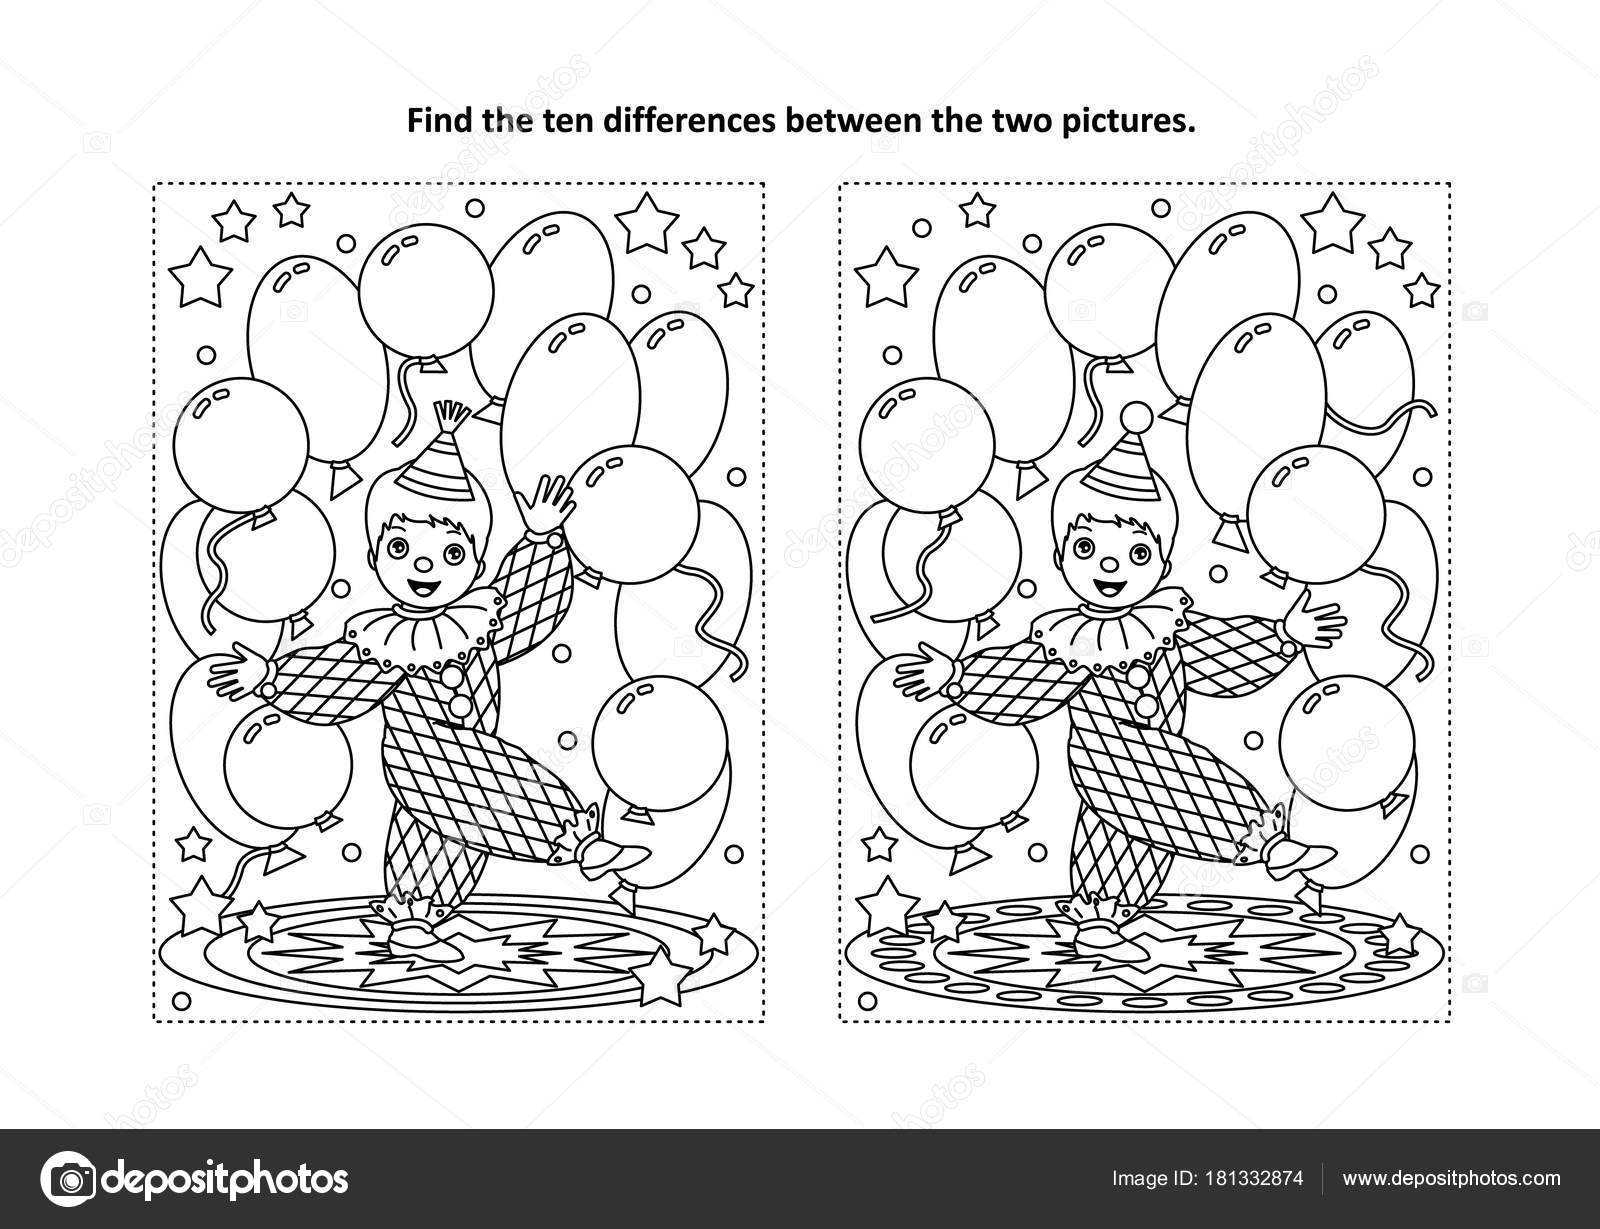 Circus Themed Find Ten Differences Picture Puzzle Coloring Page ...